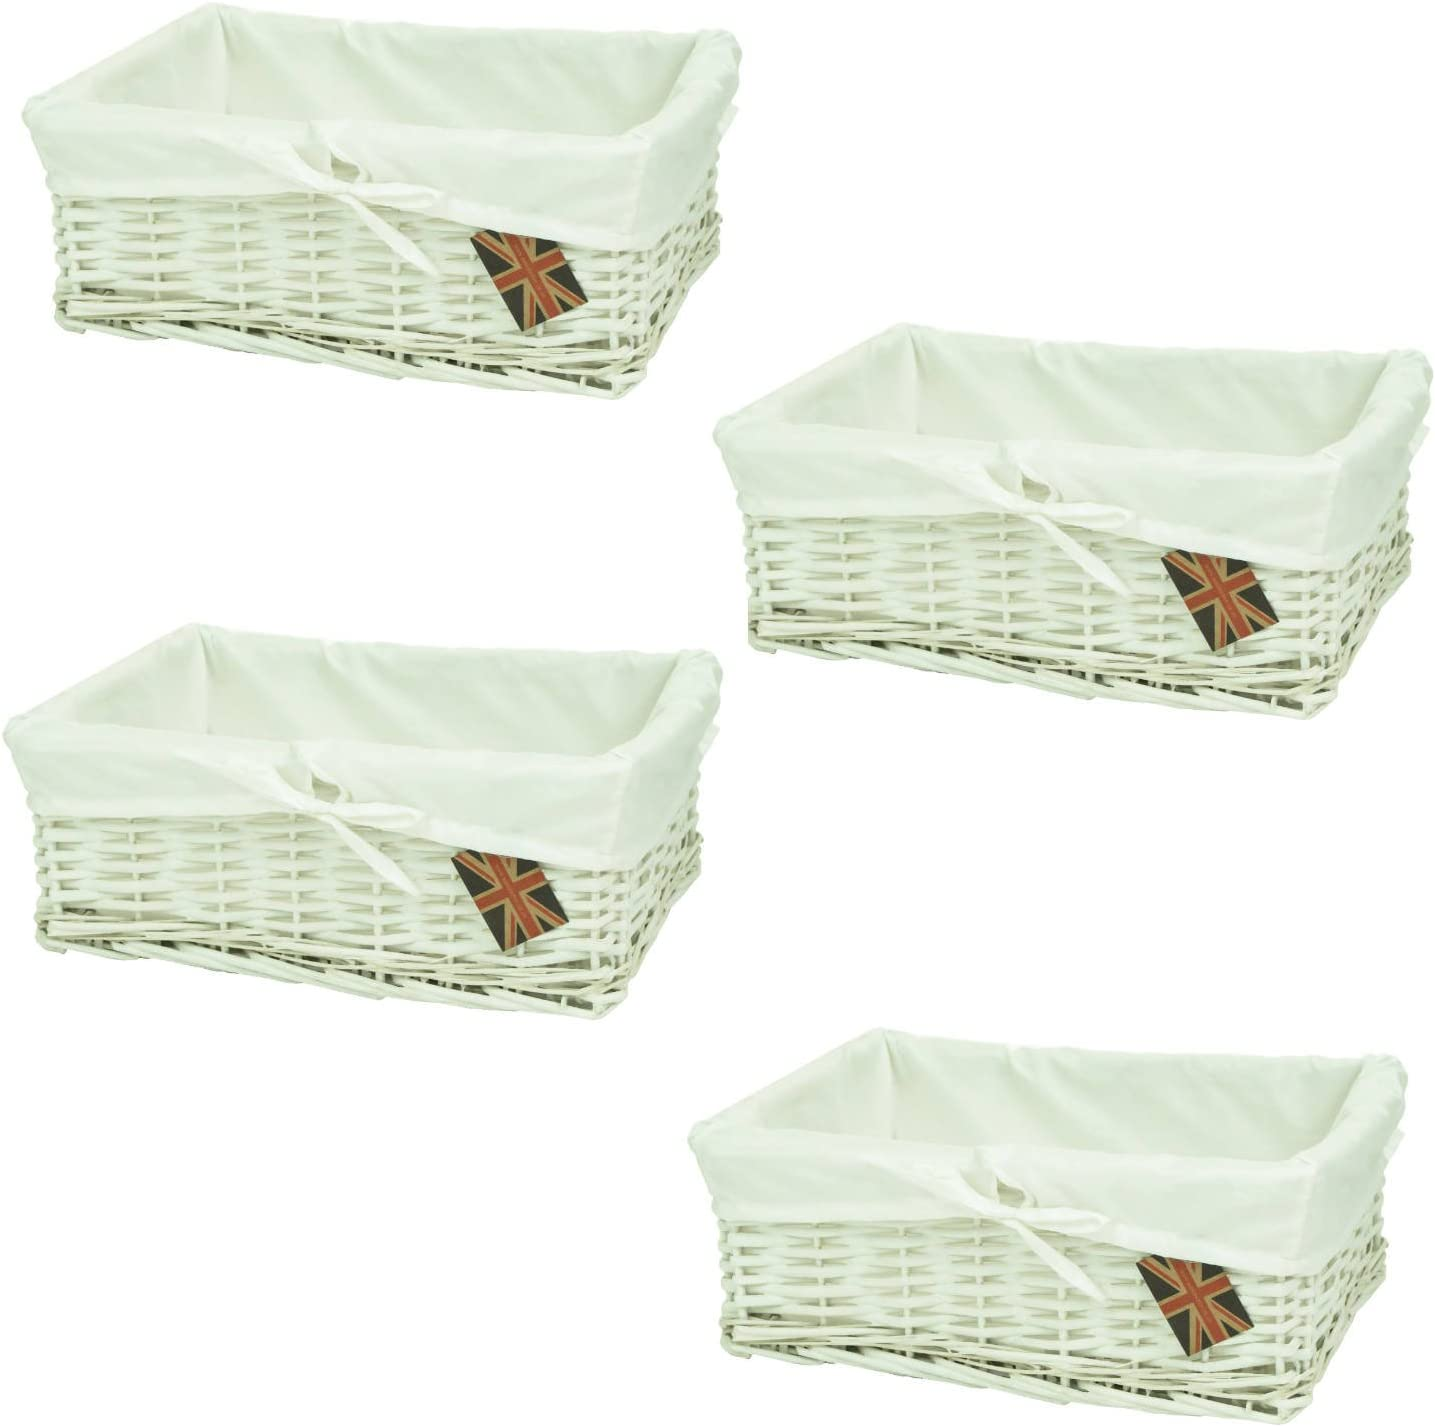 east2eden Shallow White Wicker Storage Basket /& Pure White Lining in Choice of Sizes /& Deals Set of 2 Small